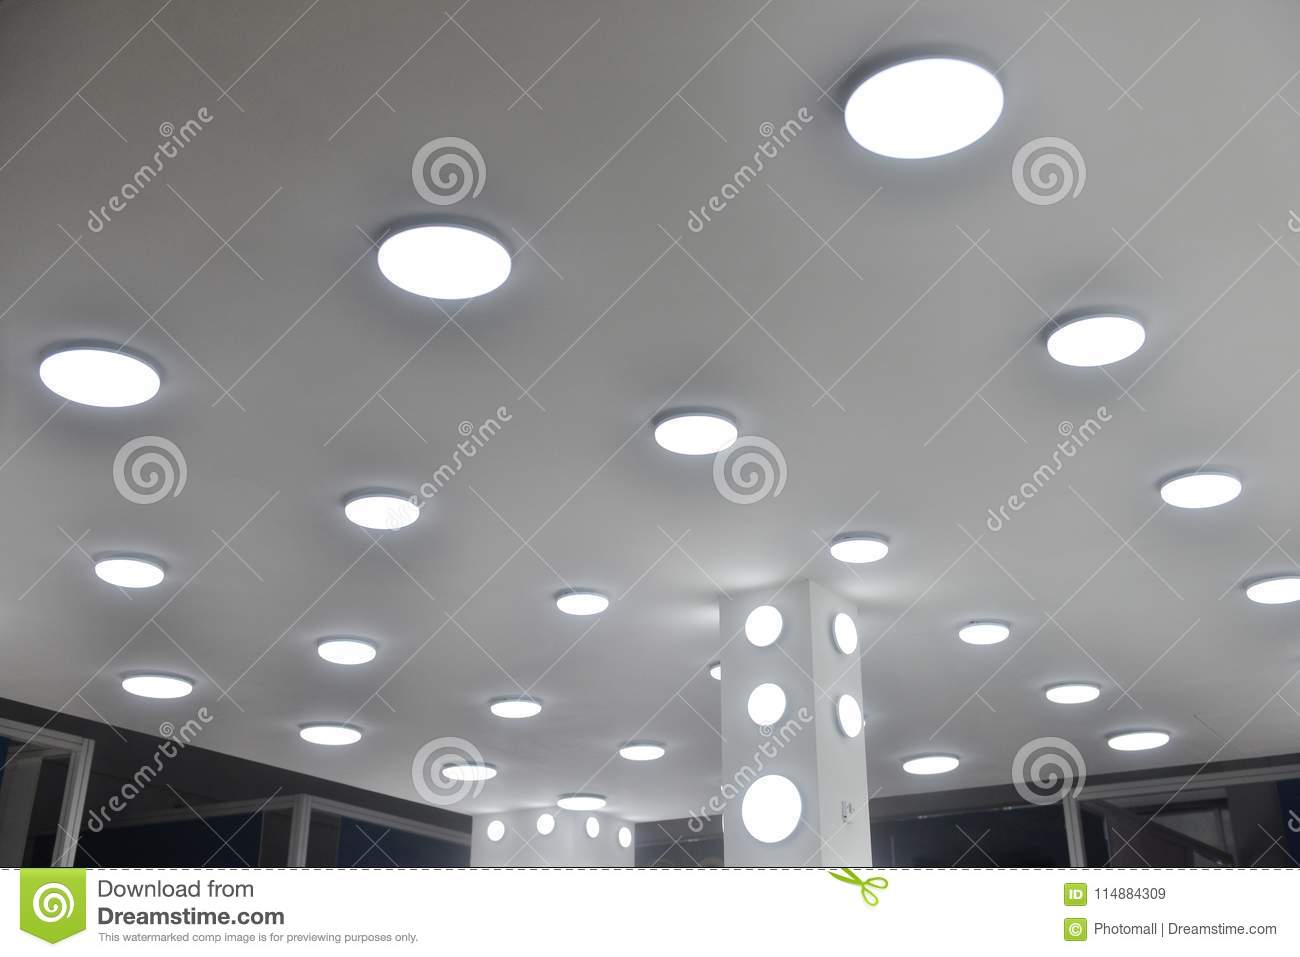 Led ceiling light bulbs stock image. Image of graphic - 114884309